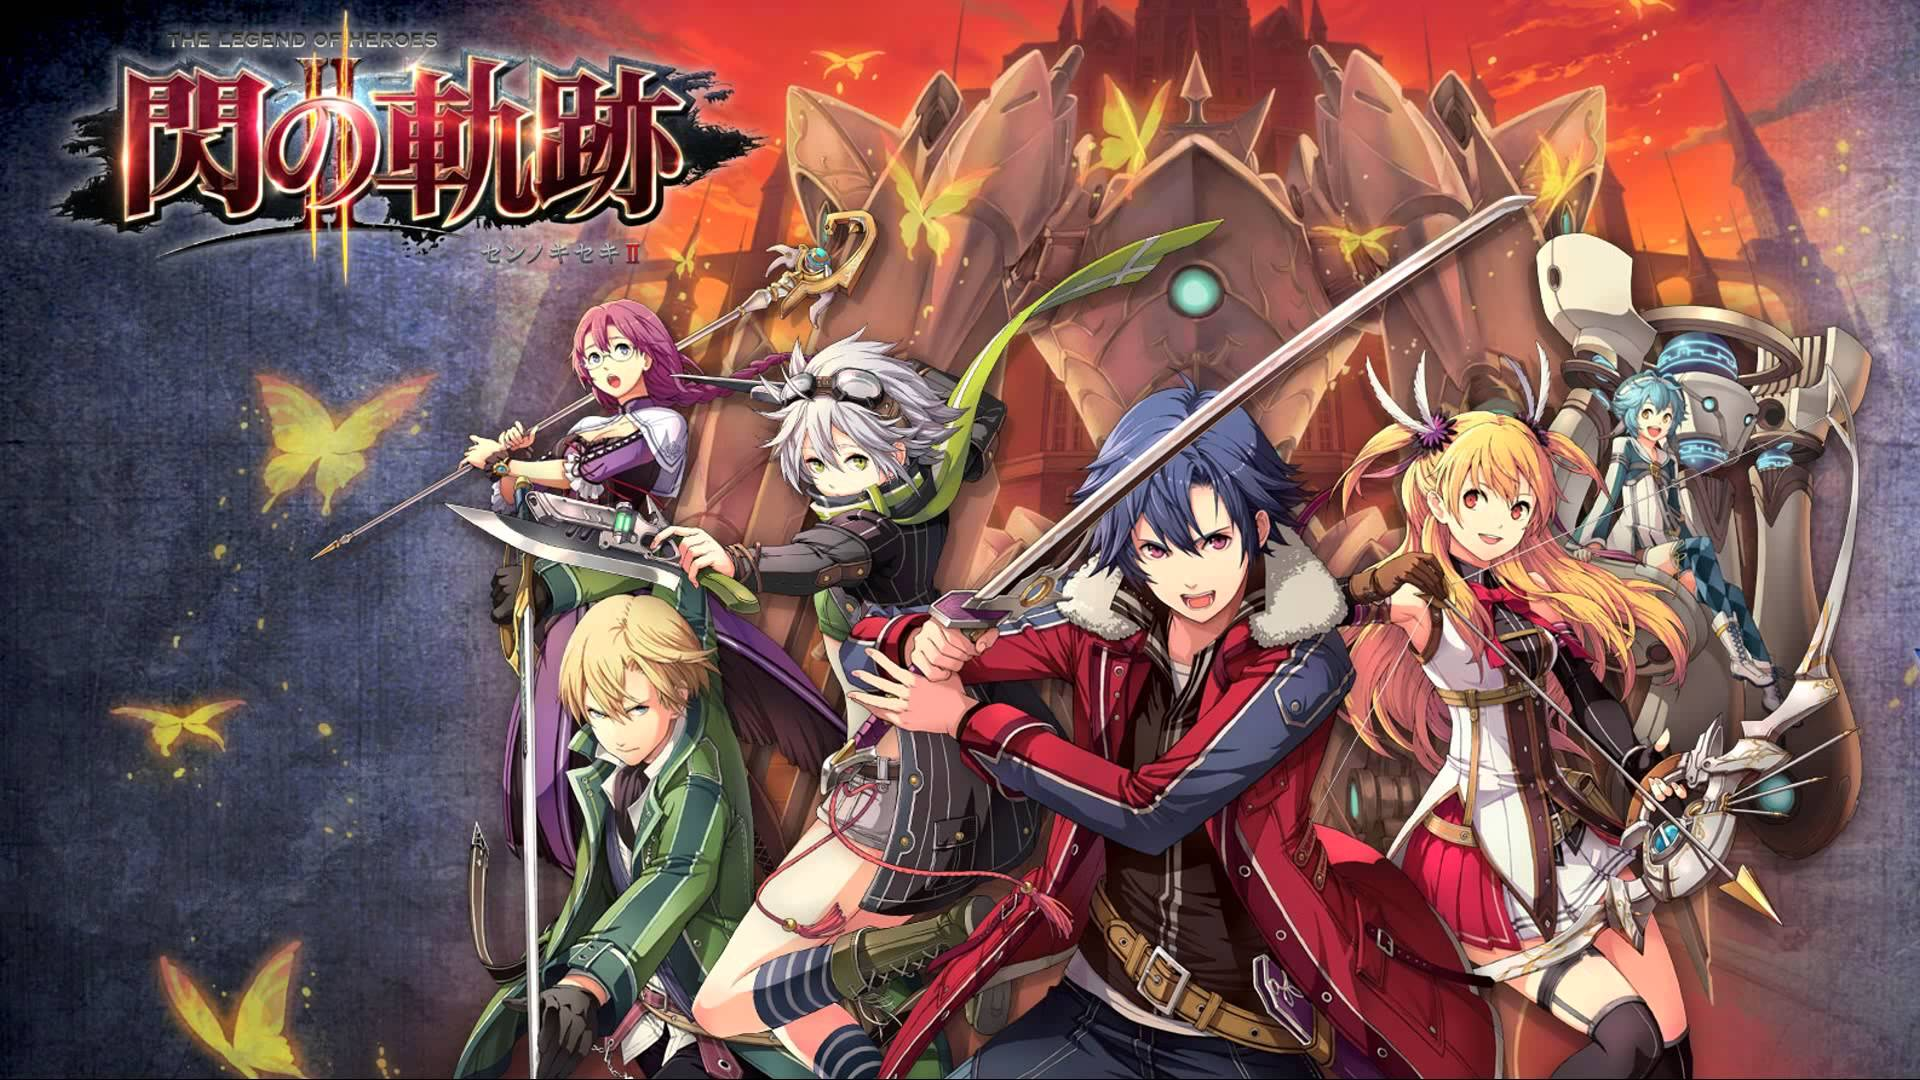 The Legend Of Heroes Trails Of Cold Steel Wallpapers Wallpaper Cave